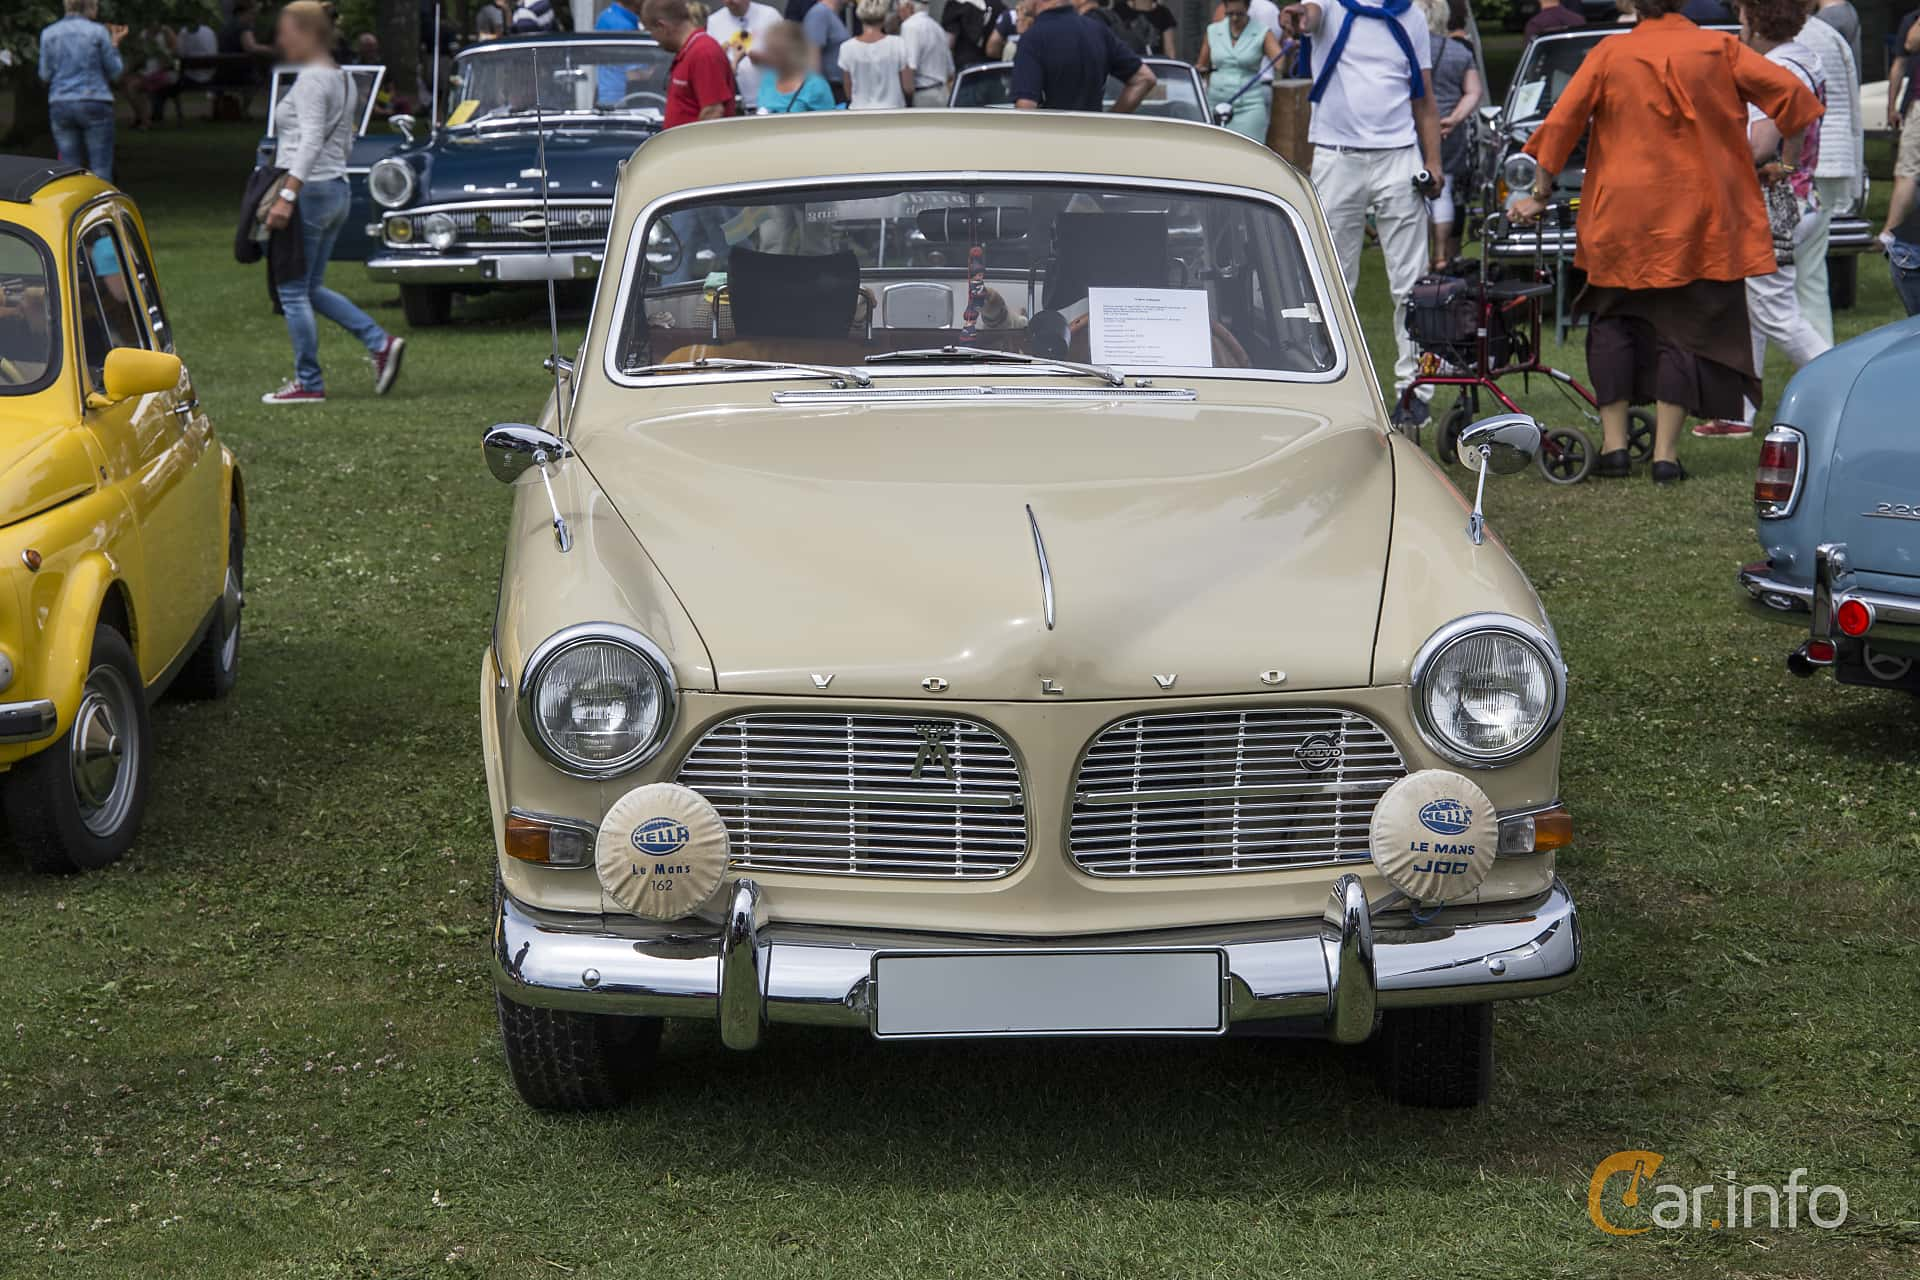 2 images of volvo amazon 121 p130 1 8 b18a manual 75hp 1965 by pelle rh car info 1969 Volvo 1965 Volvo 210